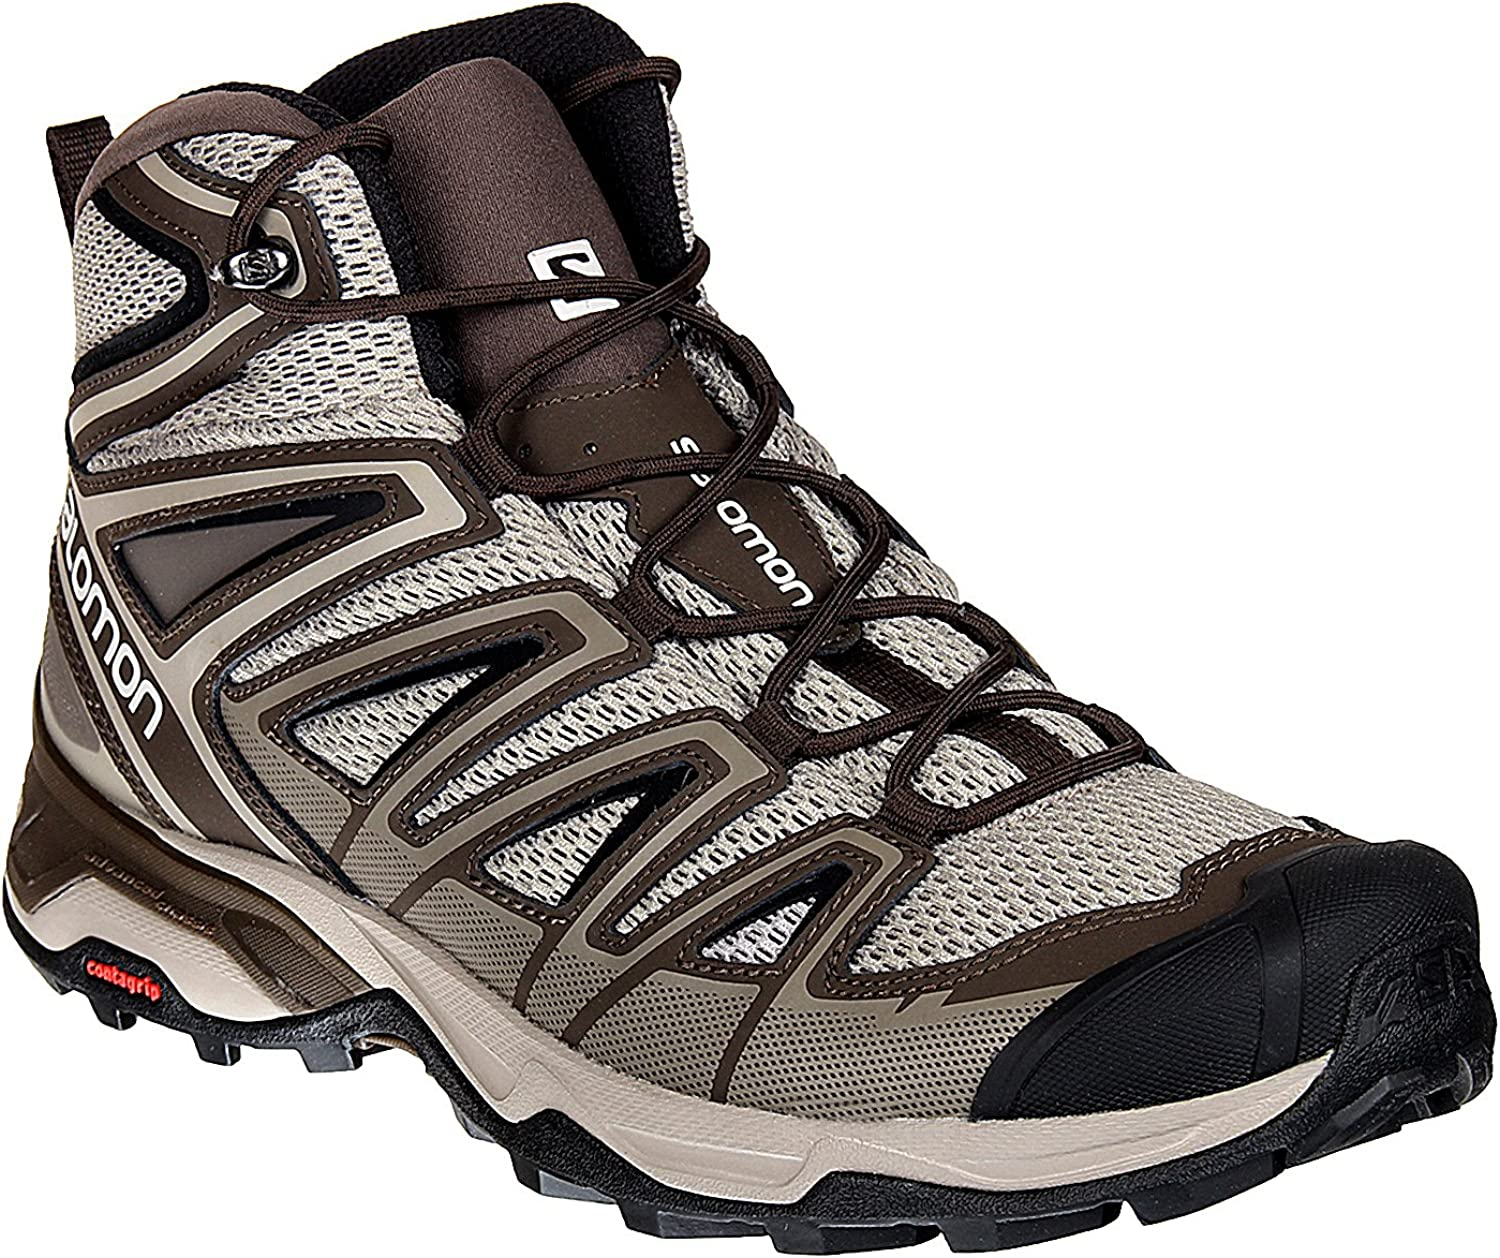 Salomon Womens X Ultra 3 Wide Mid GTX Hiking Shoes Shoes dom